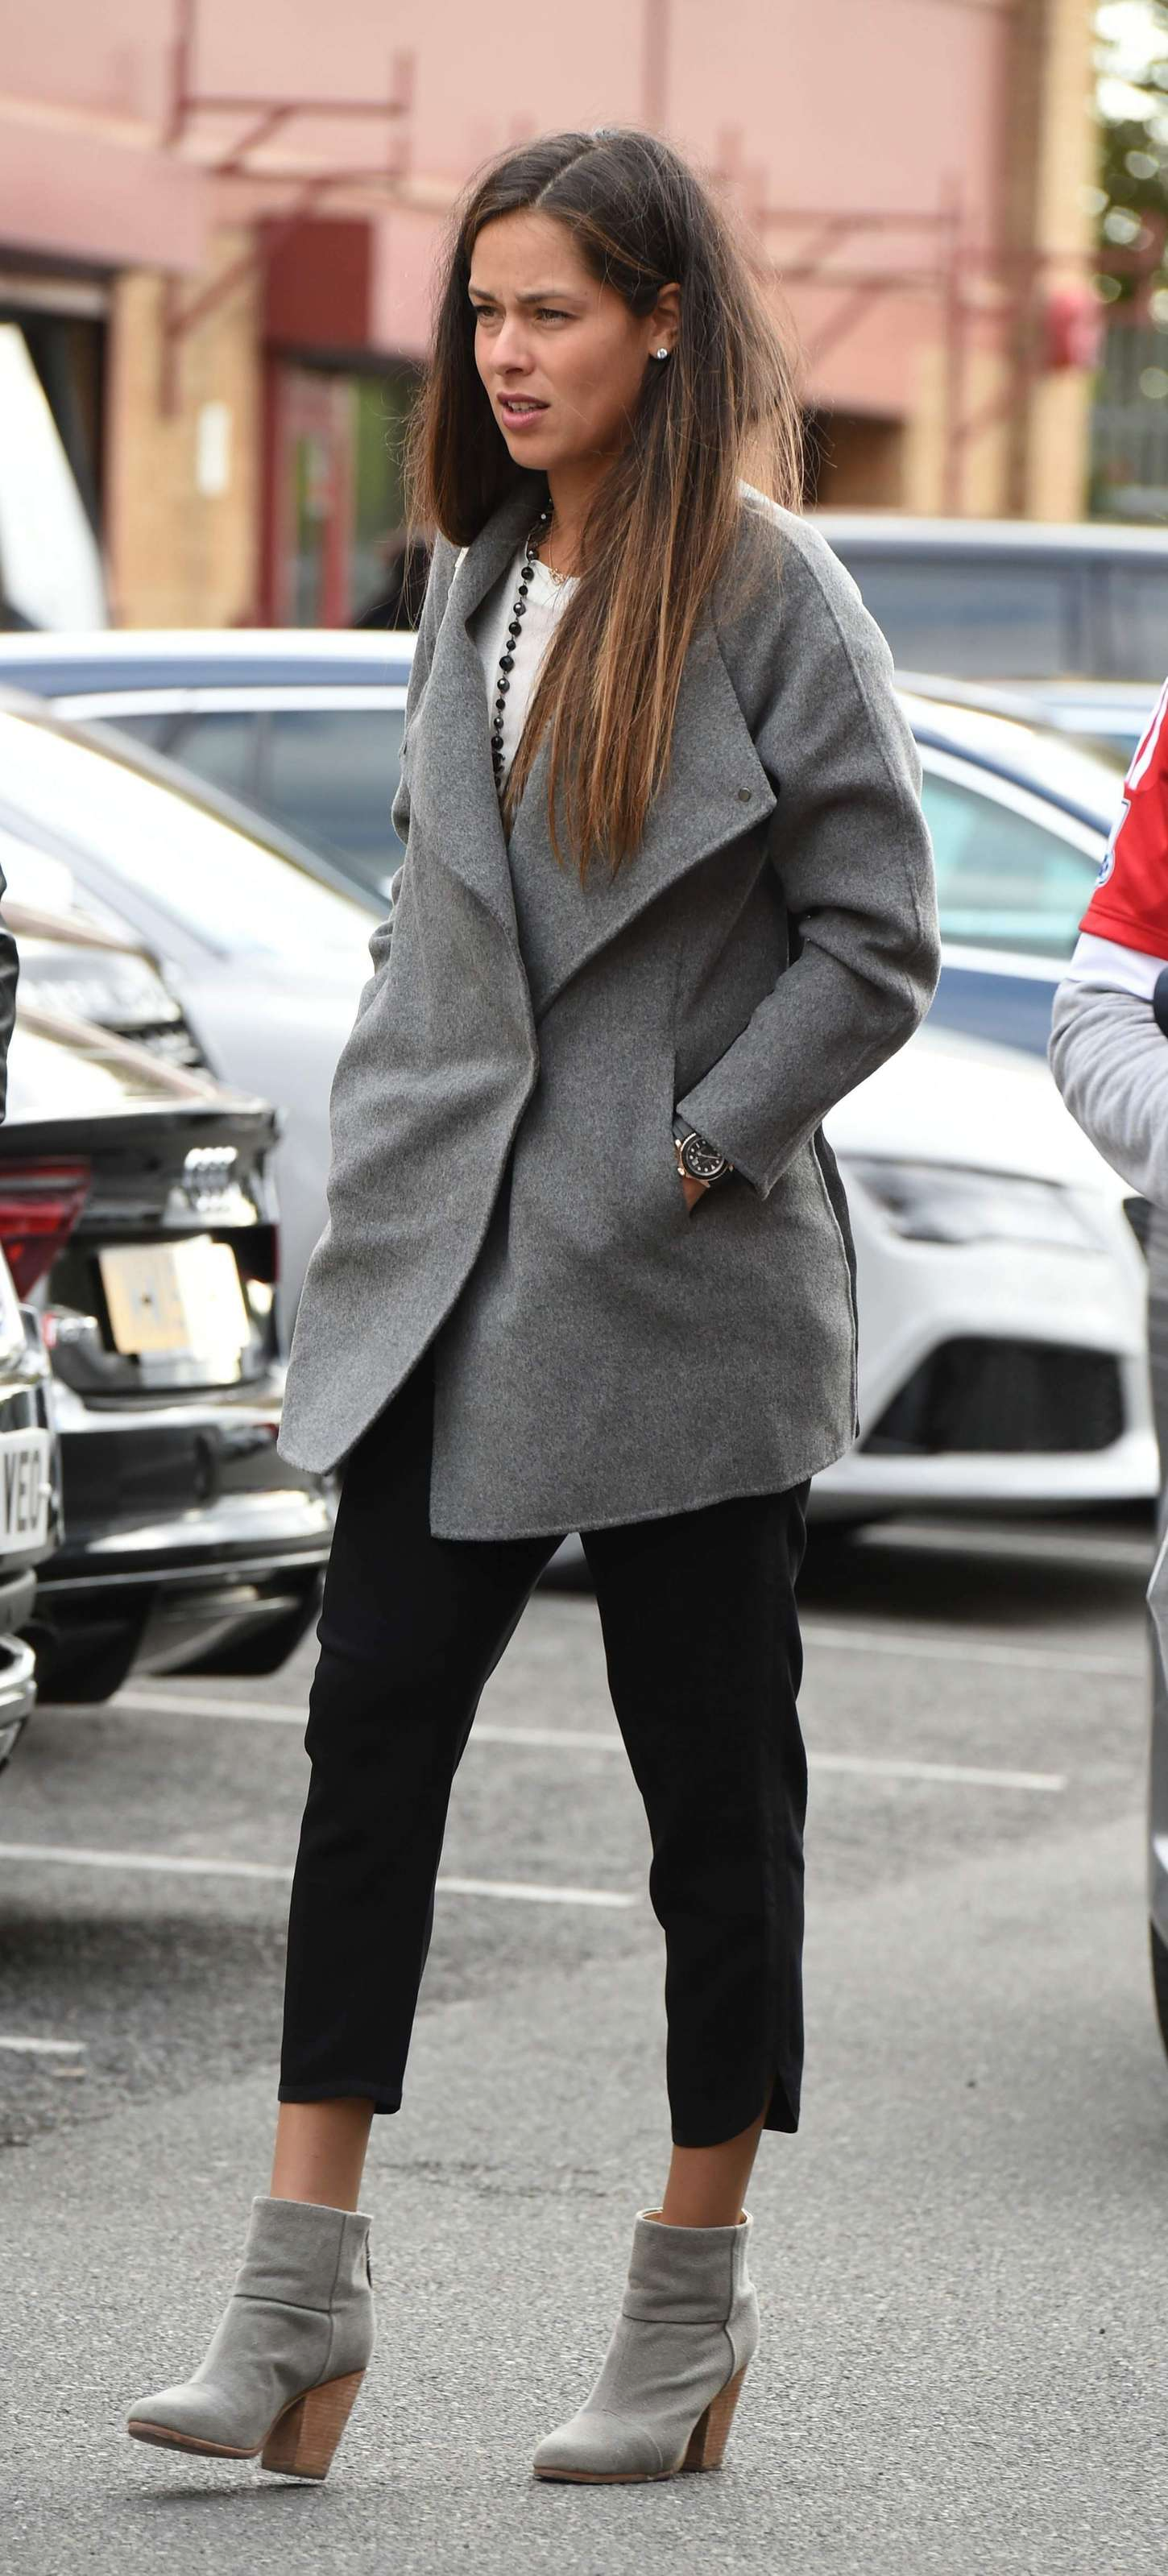 Ana Ivanovic Arriving at Old Trafford in Manchester